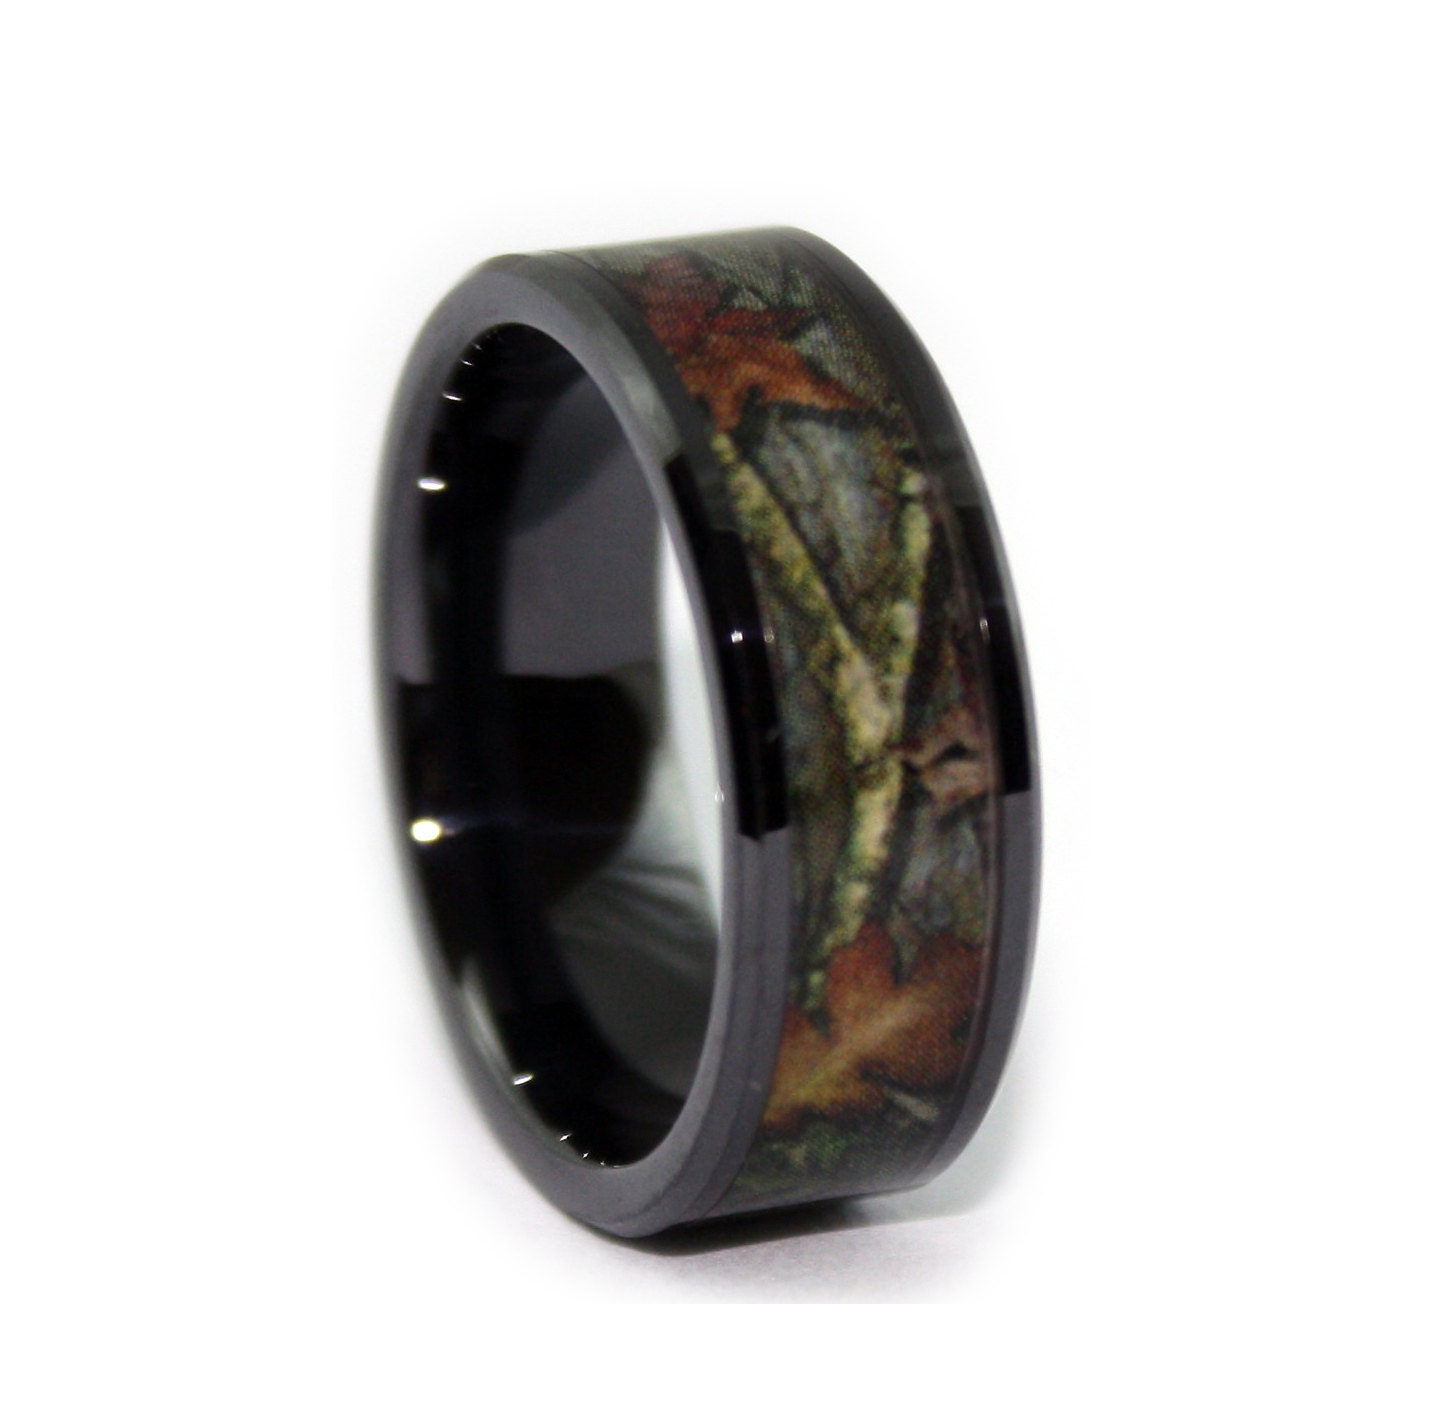 Having a Camo Wedding? Do you LIVE in Mossy Oak and Realtree Camo apparel? Love the outdoors and hunting? #1CAMO created this Camo Wedding Ring for you! Our ori